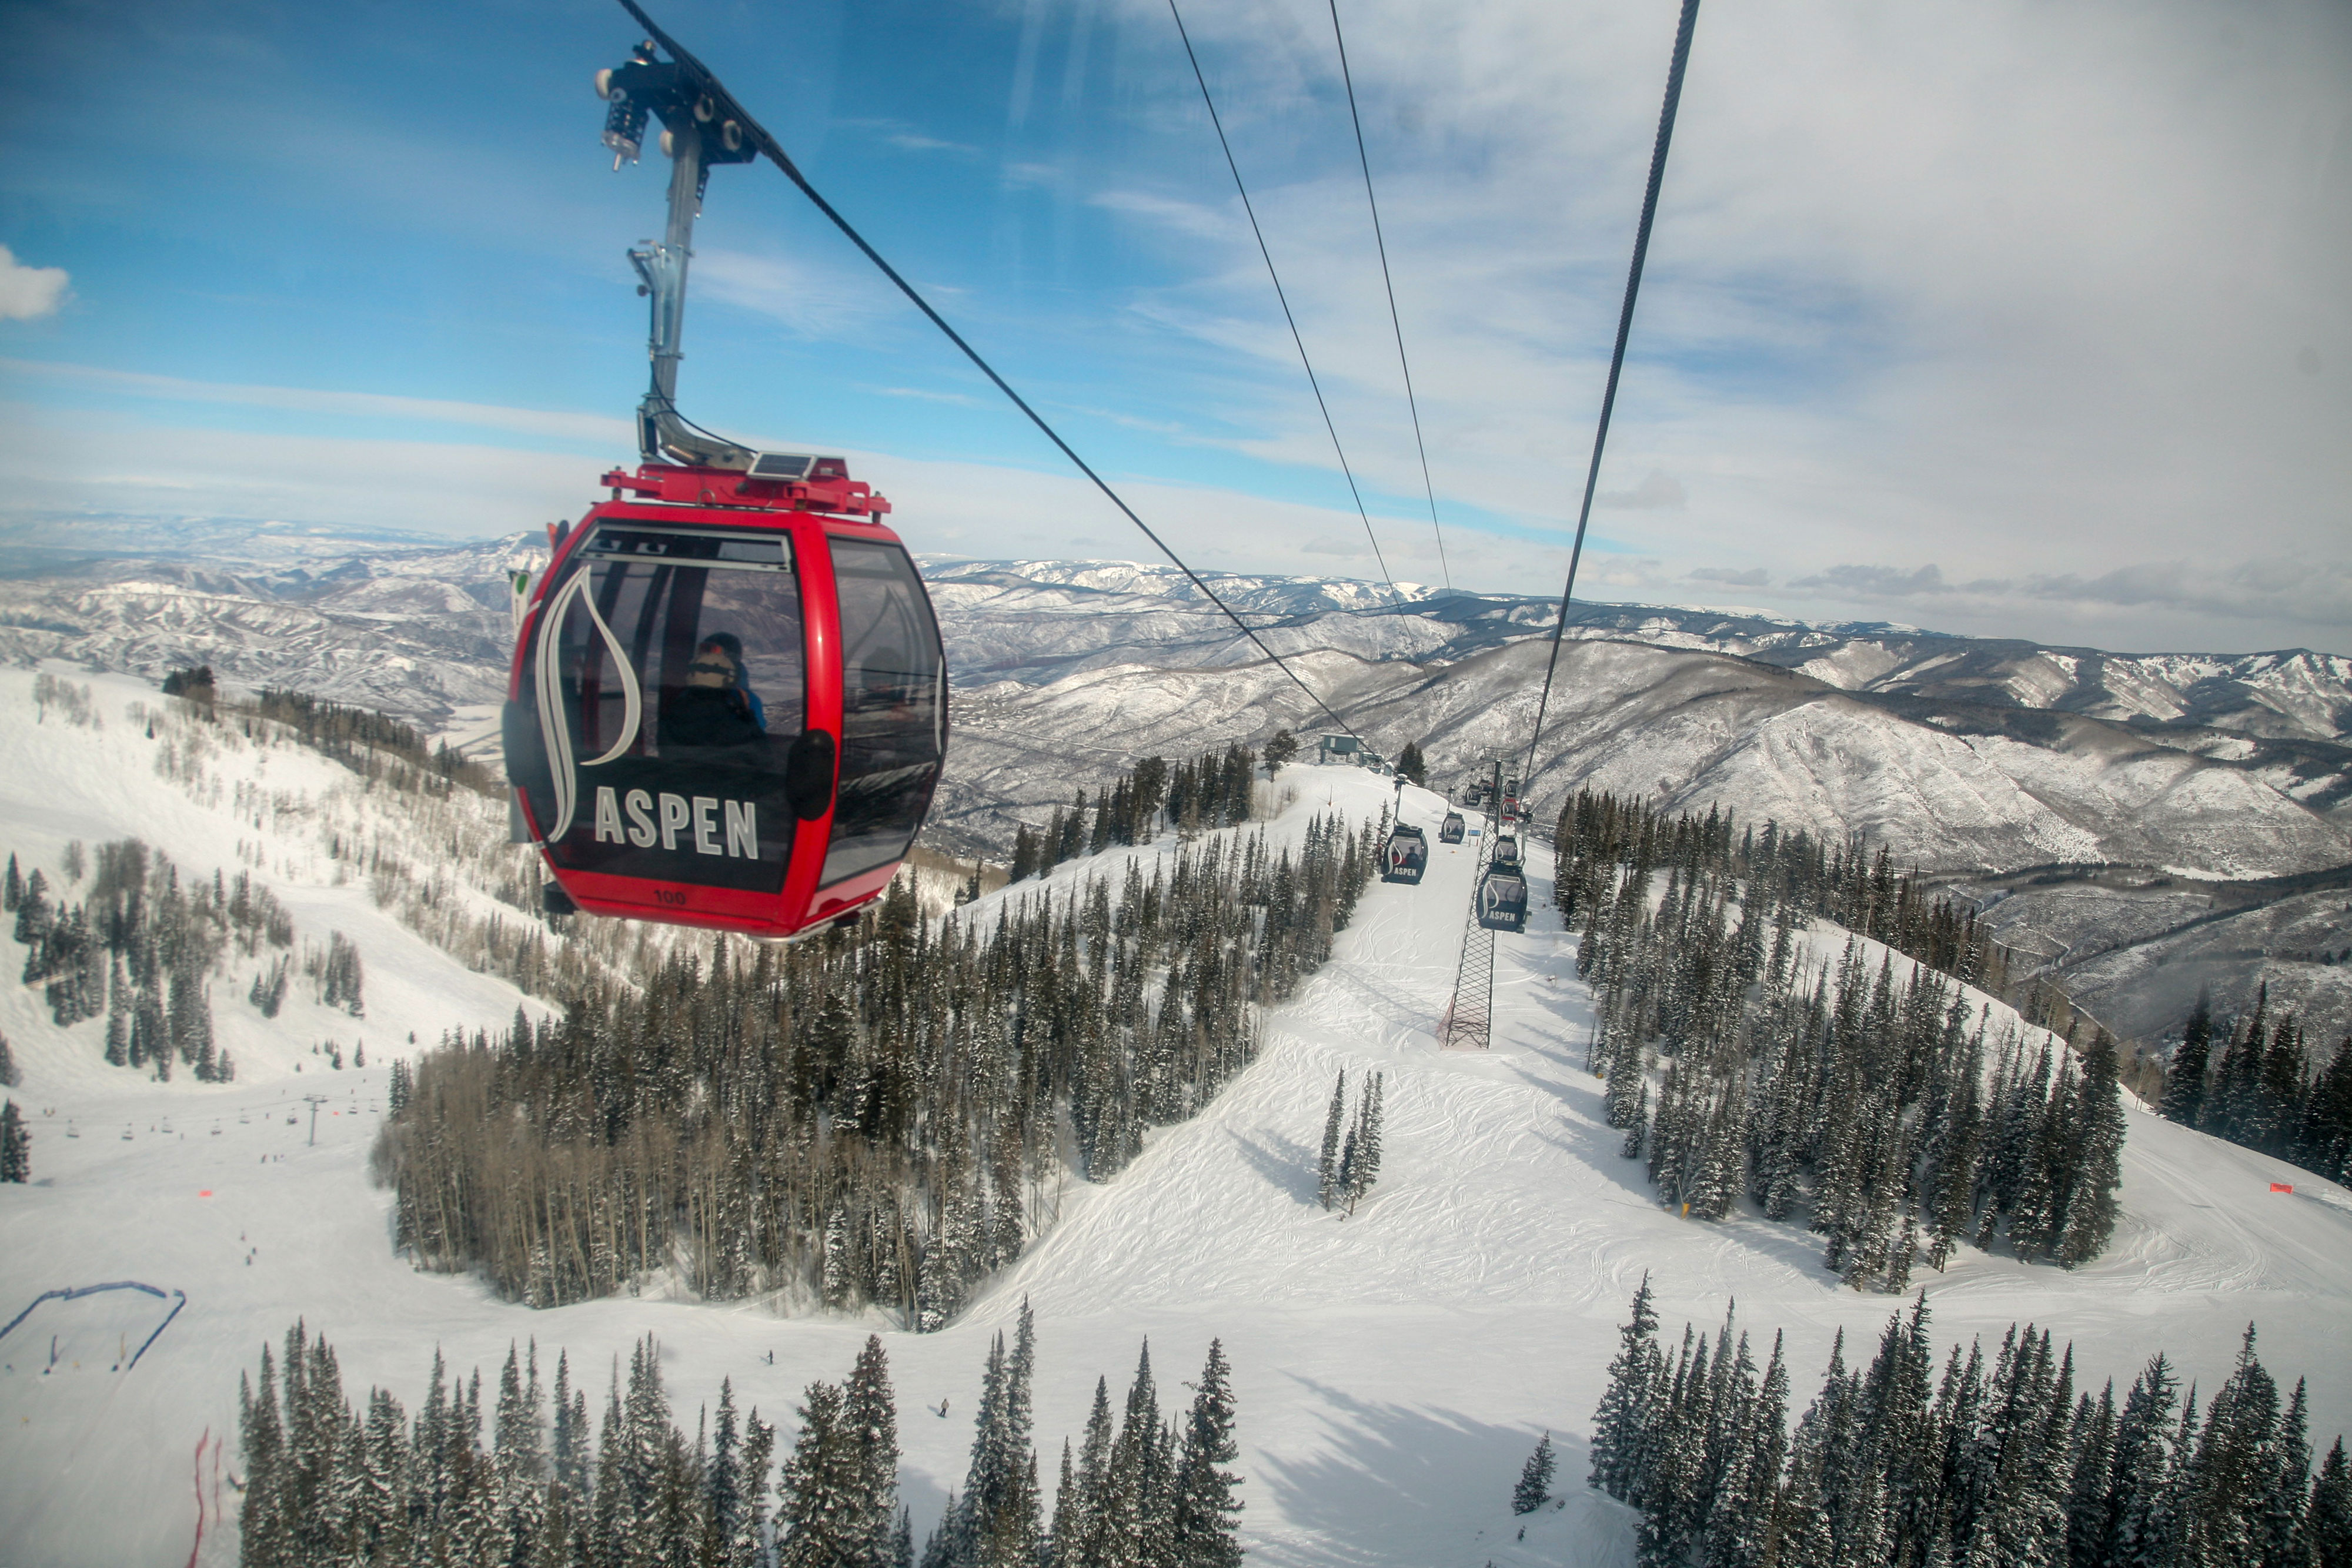 <p>While Aspen has been a skiing destination since the 1940s, the opening of its Silver Queen Gondola in 1986 helped its appeal explode. It cut the time it took to get up the mountain and shielded increasingly wealthy visitors from the elements.</p>